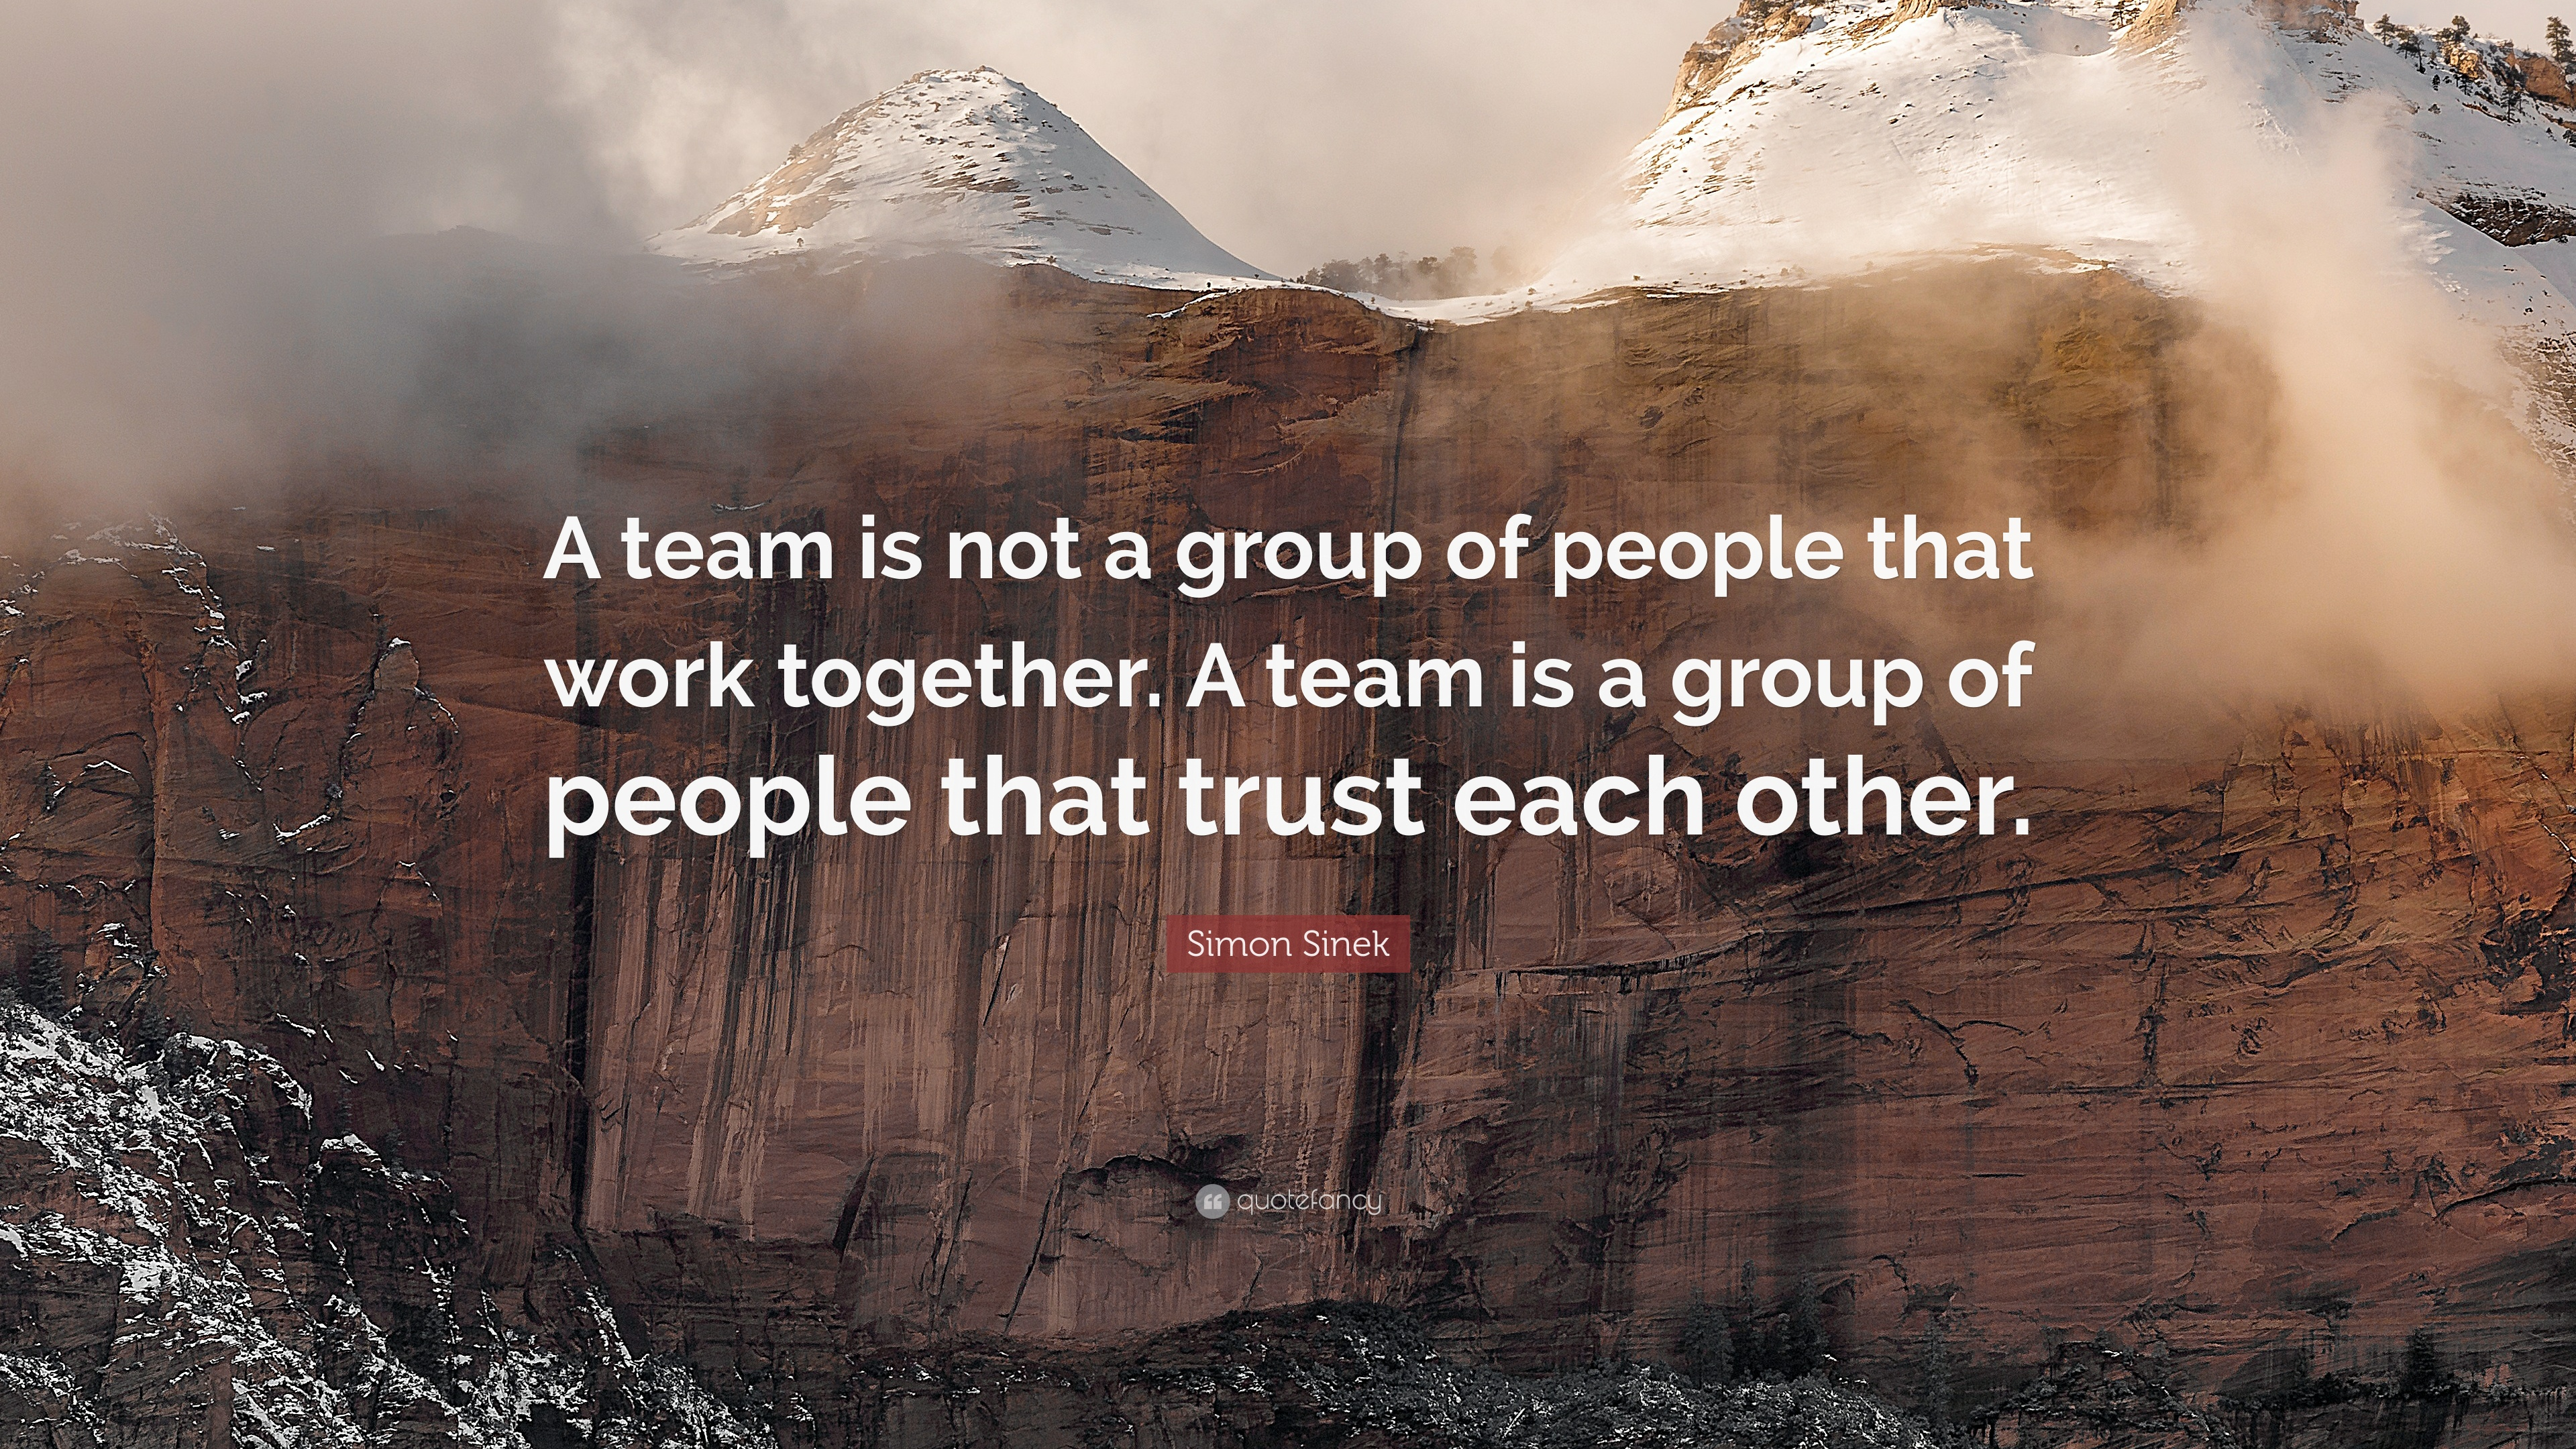 simon sinek quote a team is not a group of people that work together